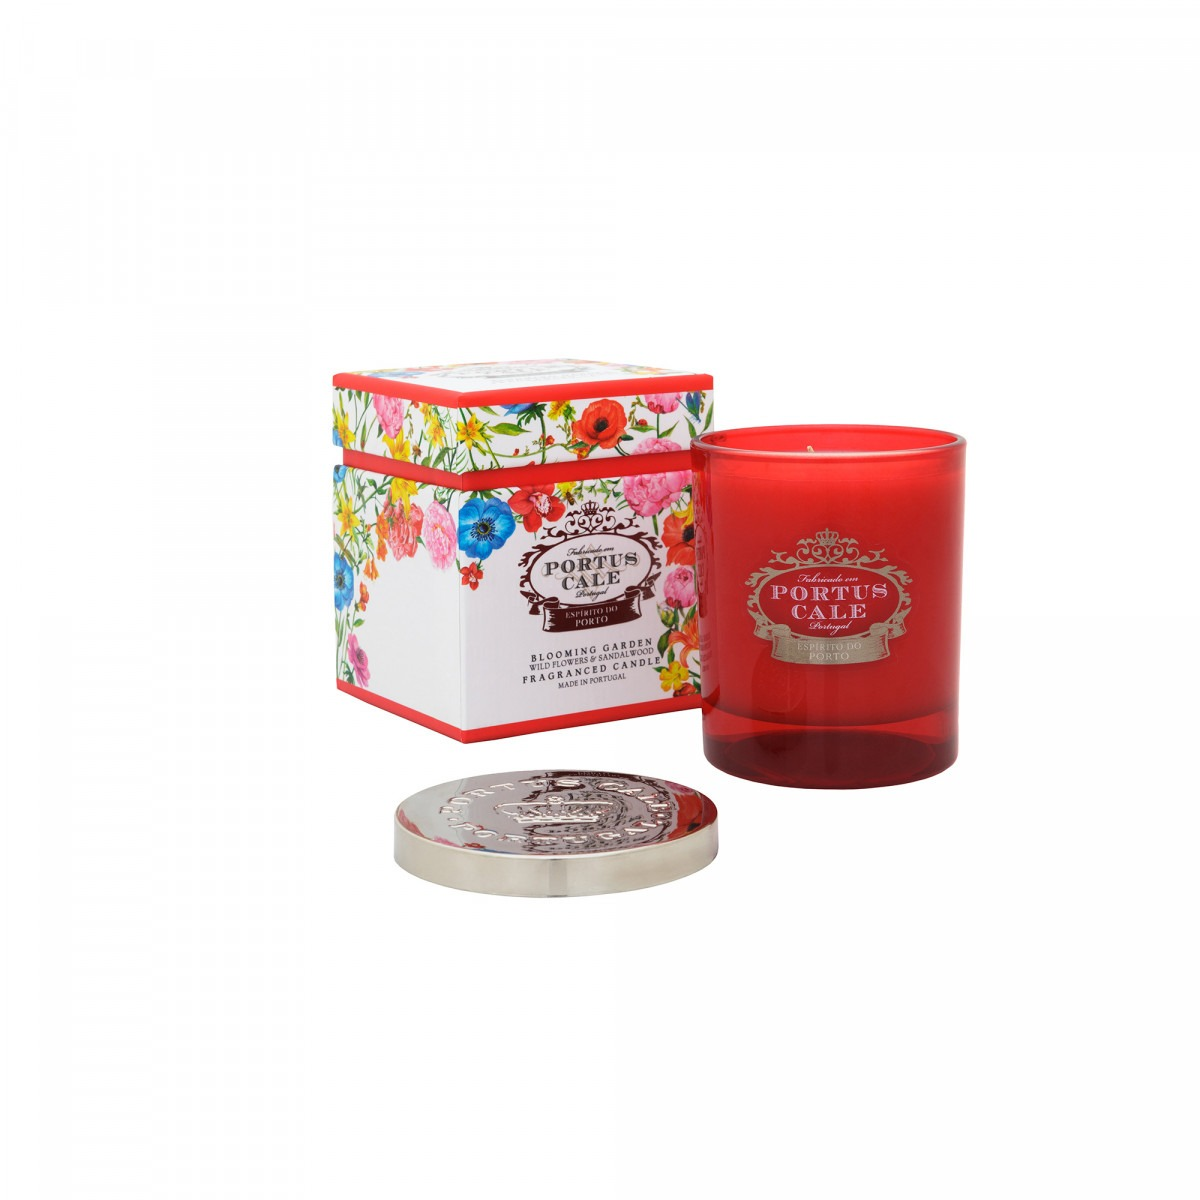 Portus Cale Blooming Garden Candle 225g